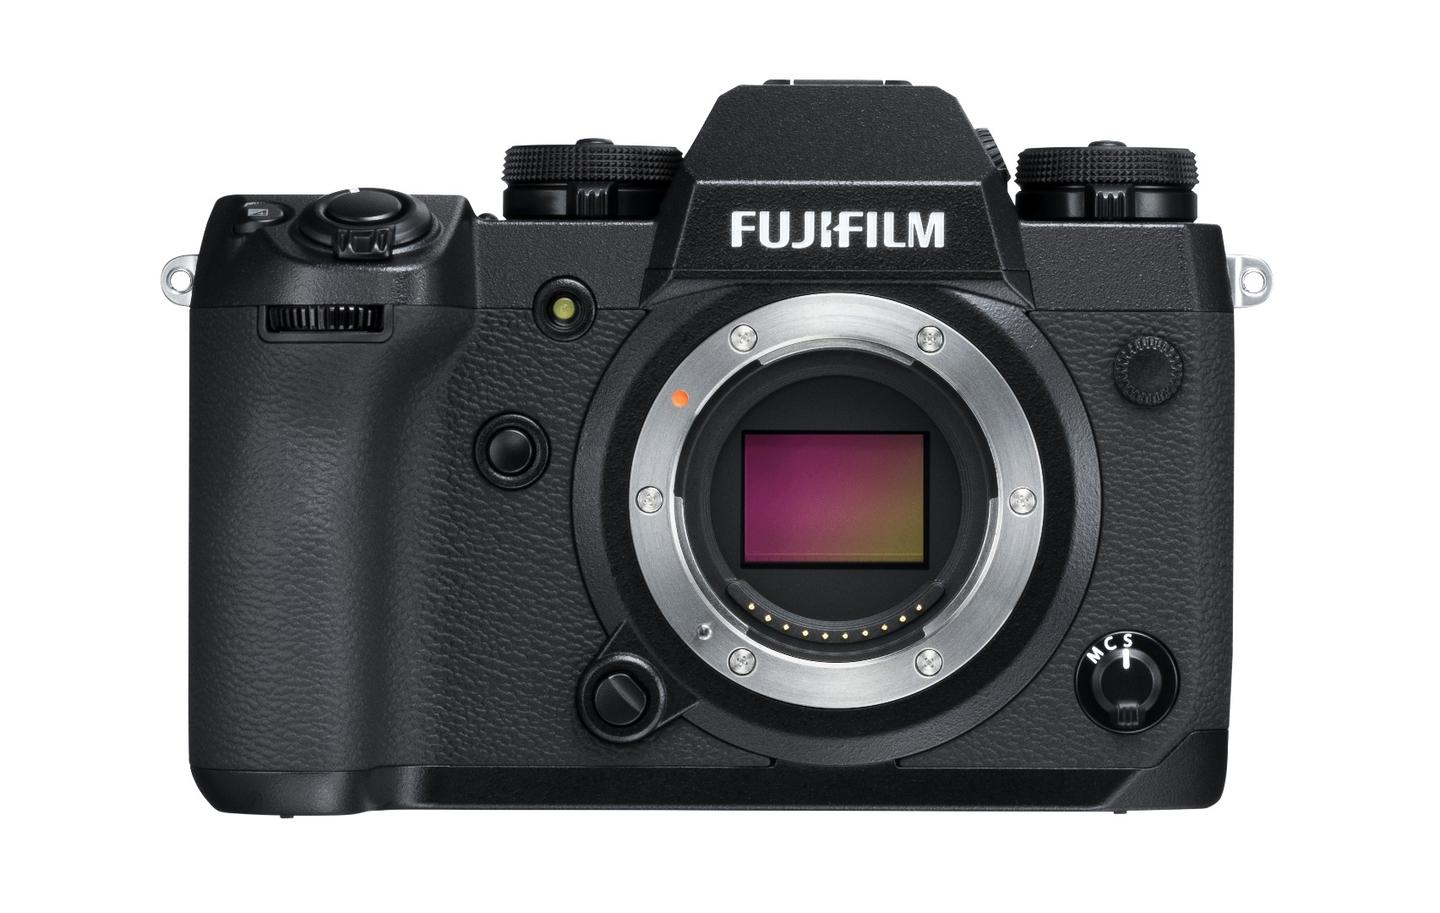 The Fujifilm X-H1 features a 24.3 megapixel APS-C (23.5 x 15.6 mm) X-Trans CMOS III sensor paired with an X-Processor Pro image processing engine